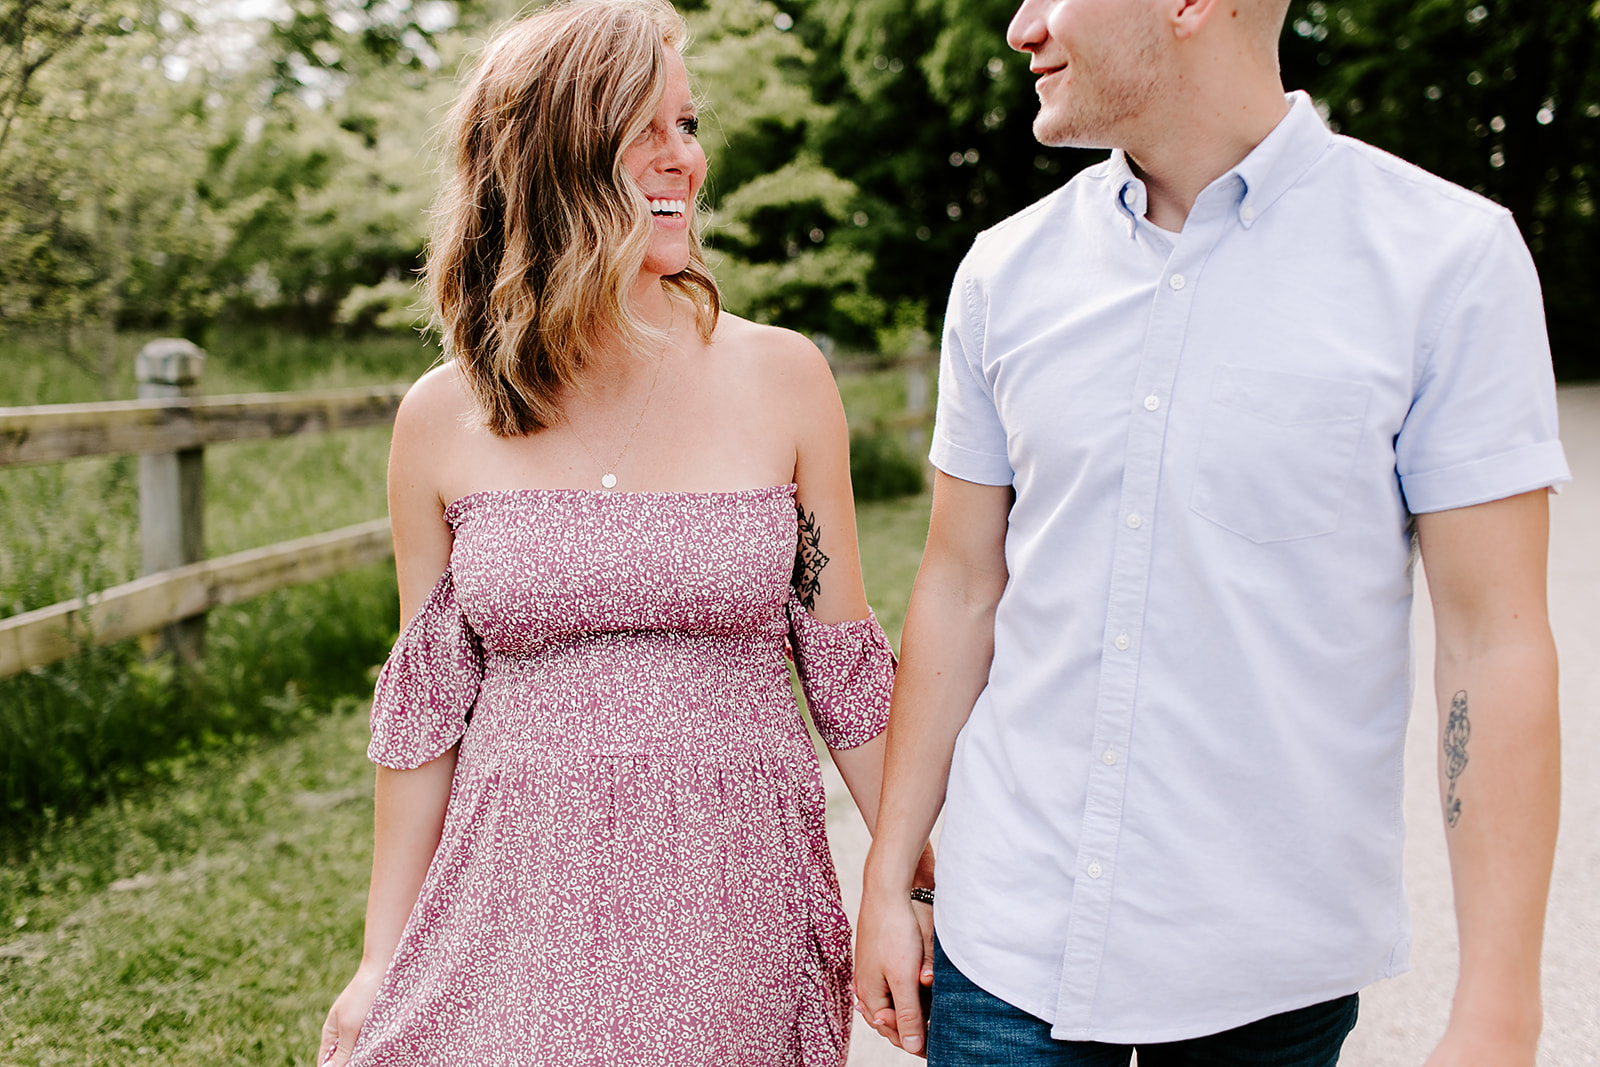 Casie_and_Sean_Maternity_session_at_cool_creek_park_in_Carmel_Indiana_by_Emily_Wehner-163.jpg